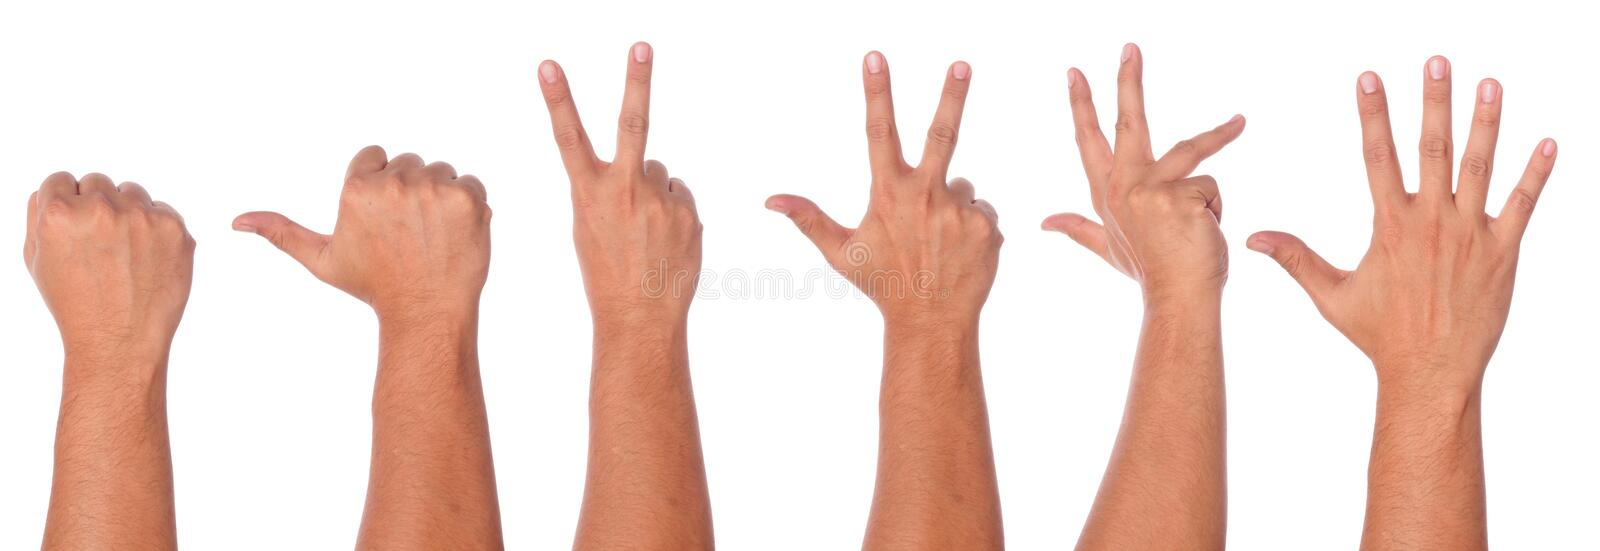 Male hand gesture and sign collection royalty free stock photo